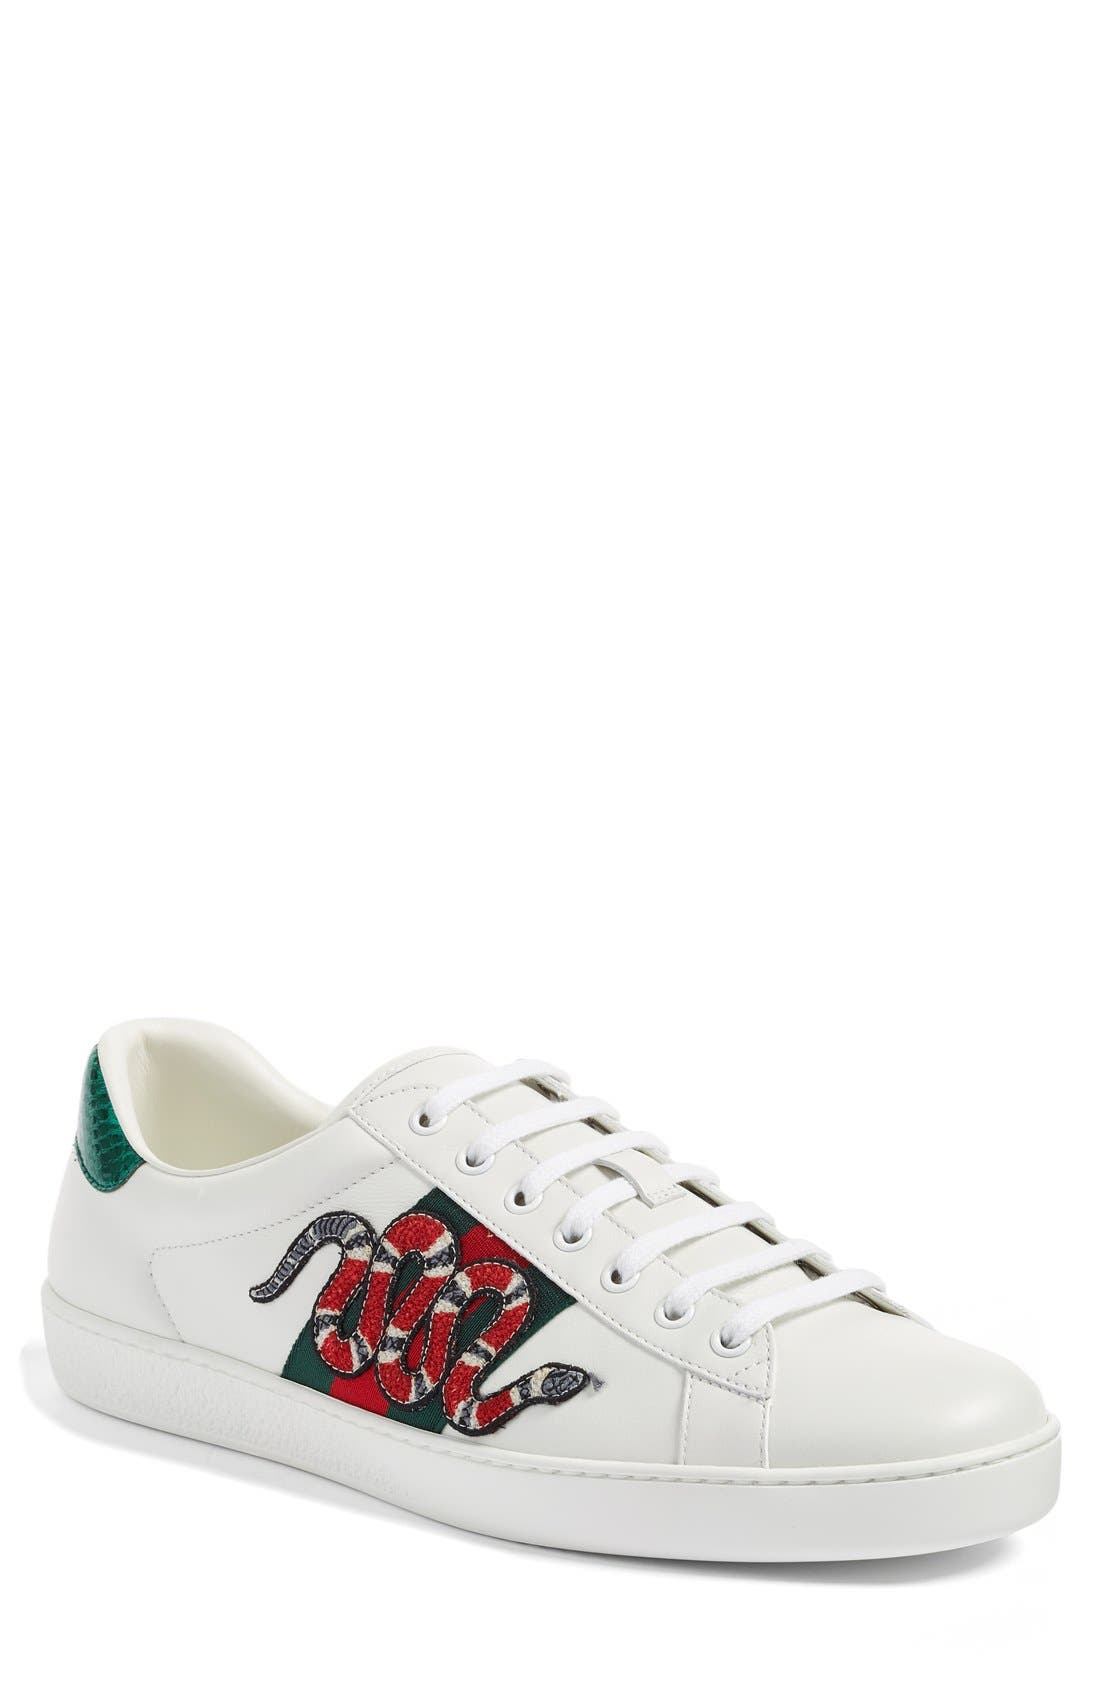 GUCCI 'New Ace' Sneaker, Main, color, BIANCO LEATHER